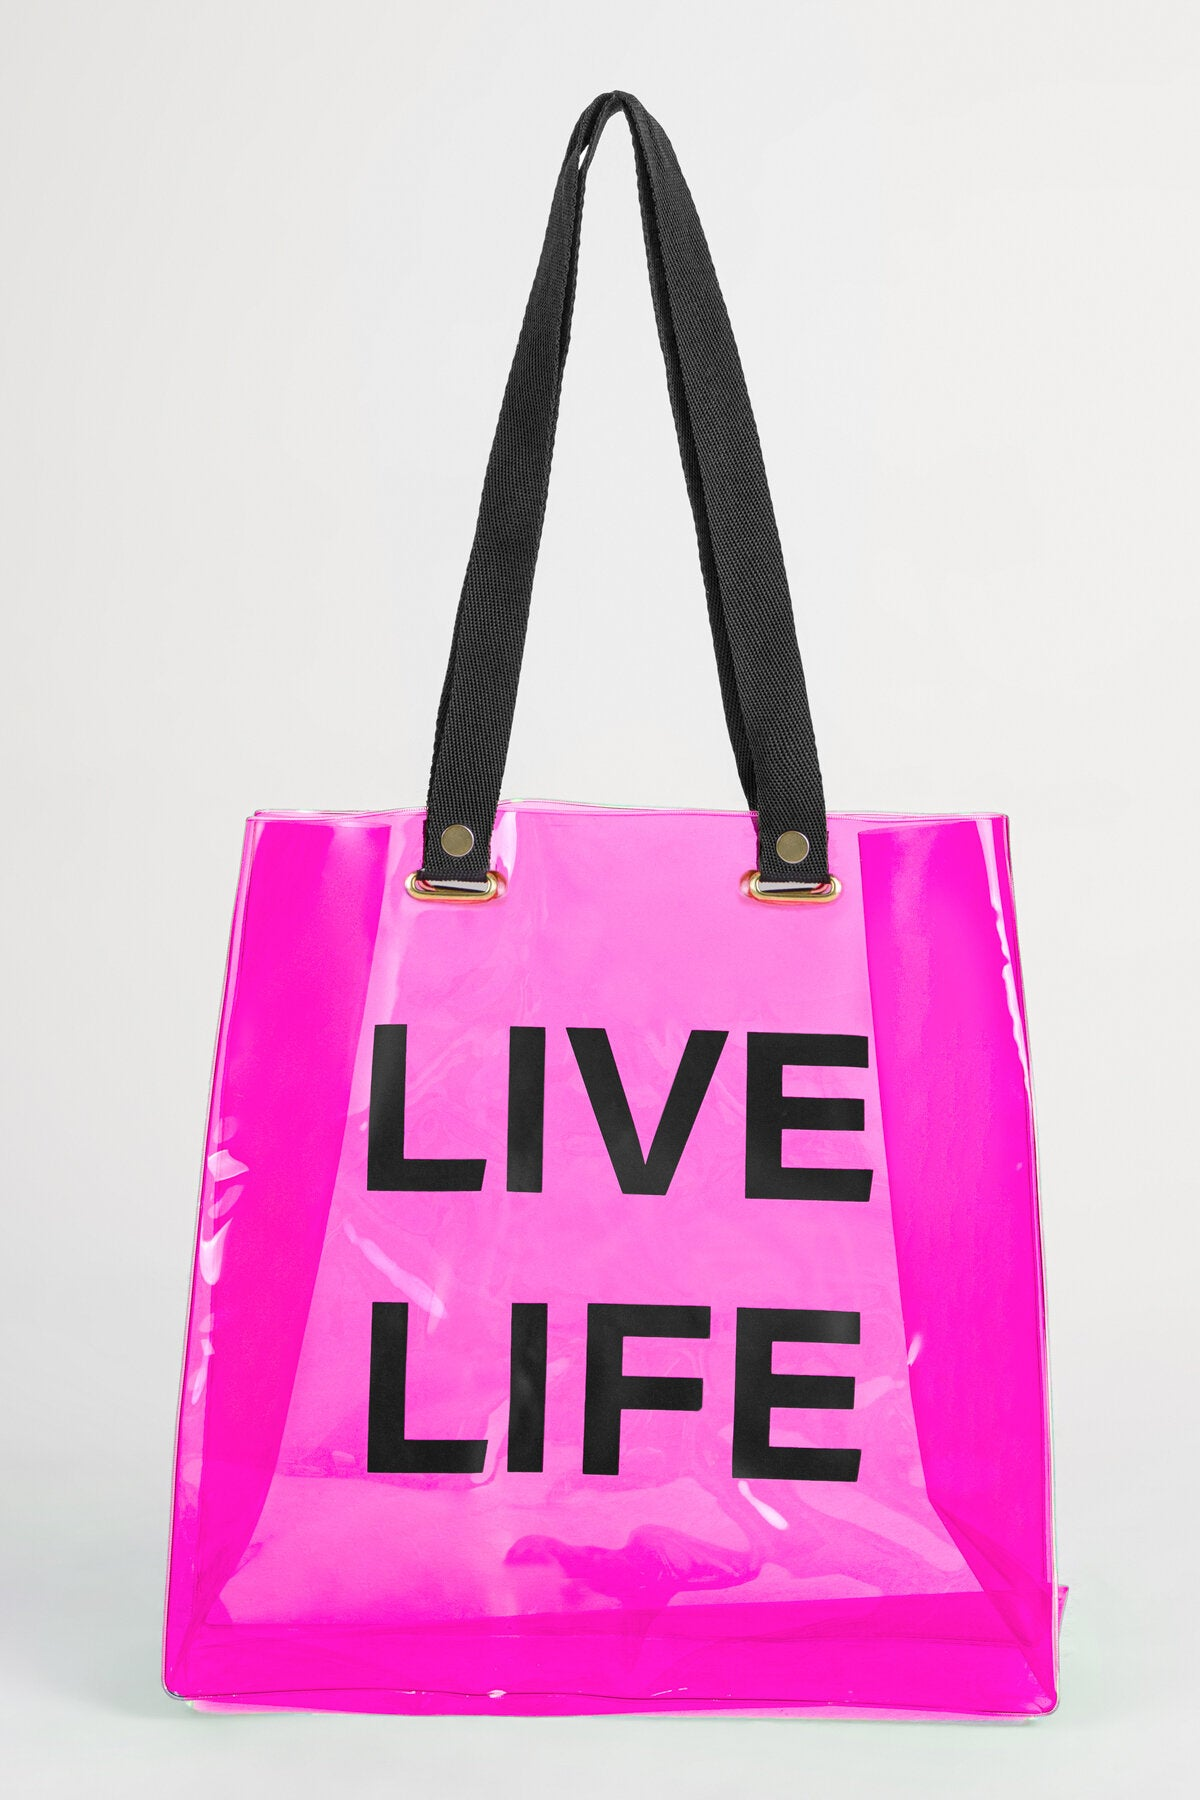 BEACH TOTE IN NEON PINK